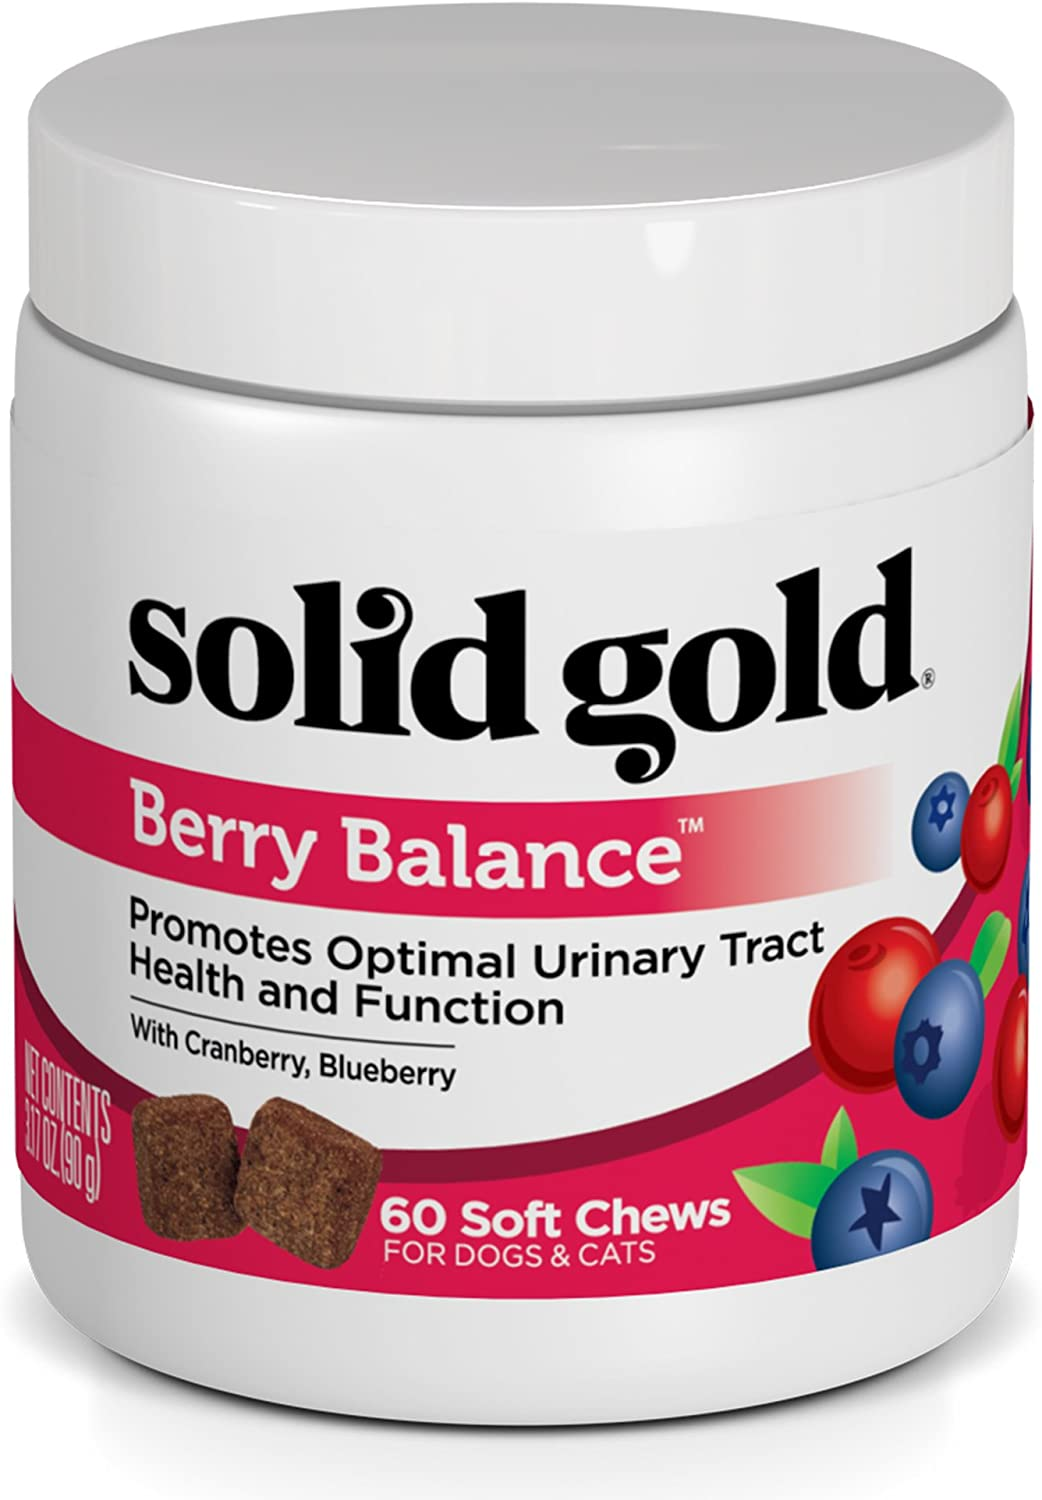 Solid Gold Dog & Cat Supplements for Urinary Tract Health and Testing; Berry Balance Chews and Powder with Antioxidant-rich cranberries plus pH Strips